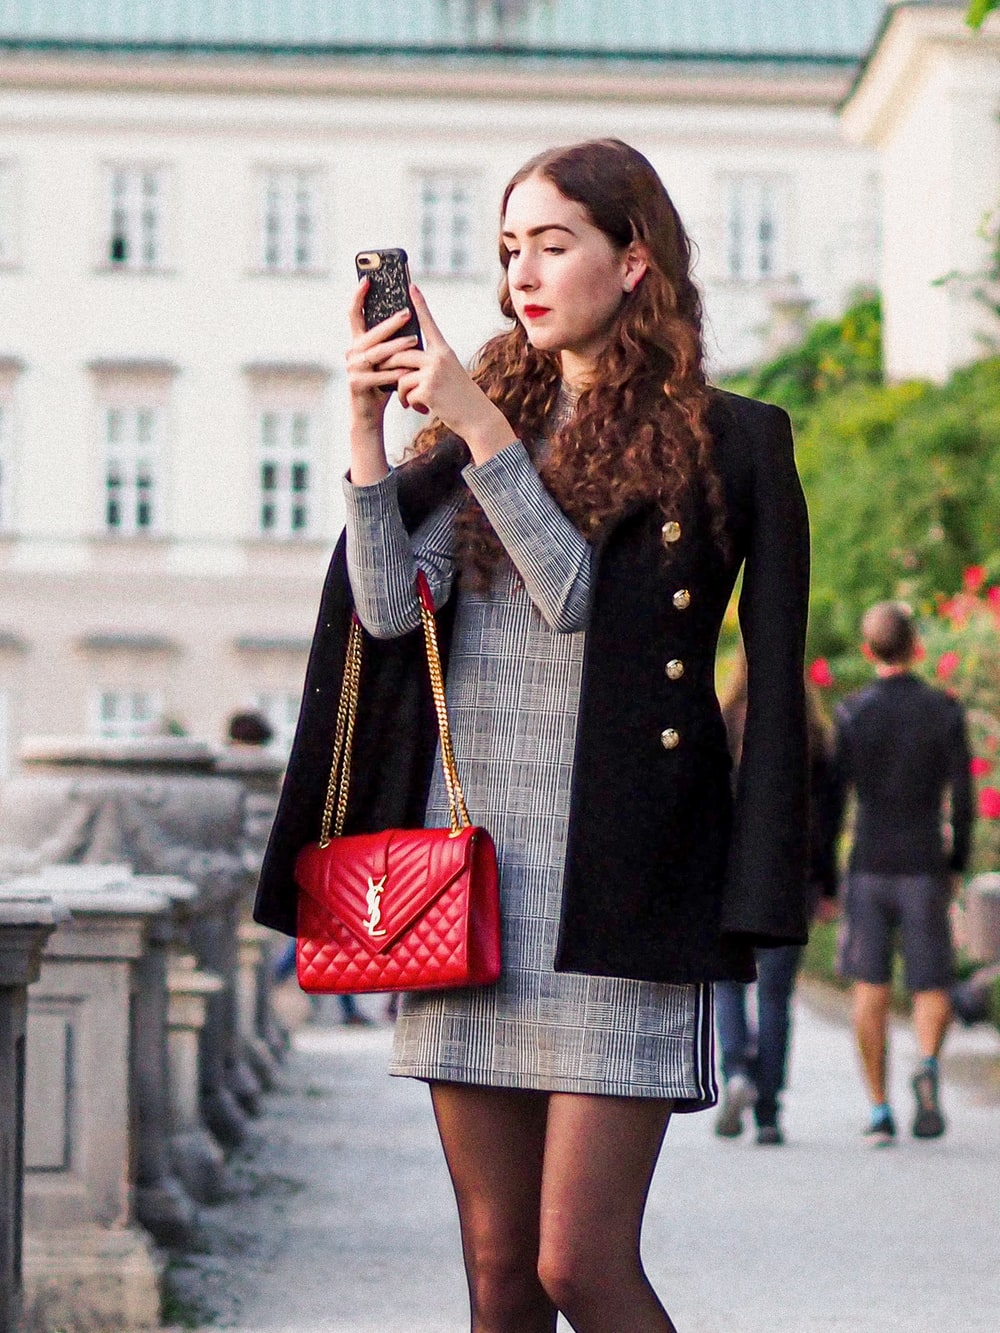 woman in black coat holding red leather handbag